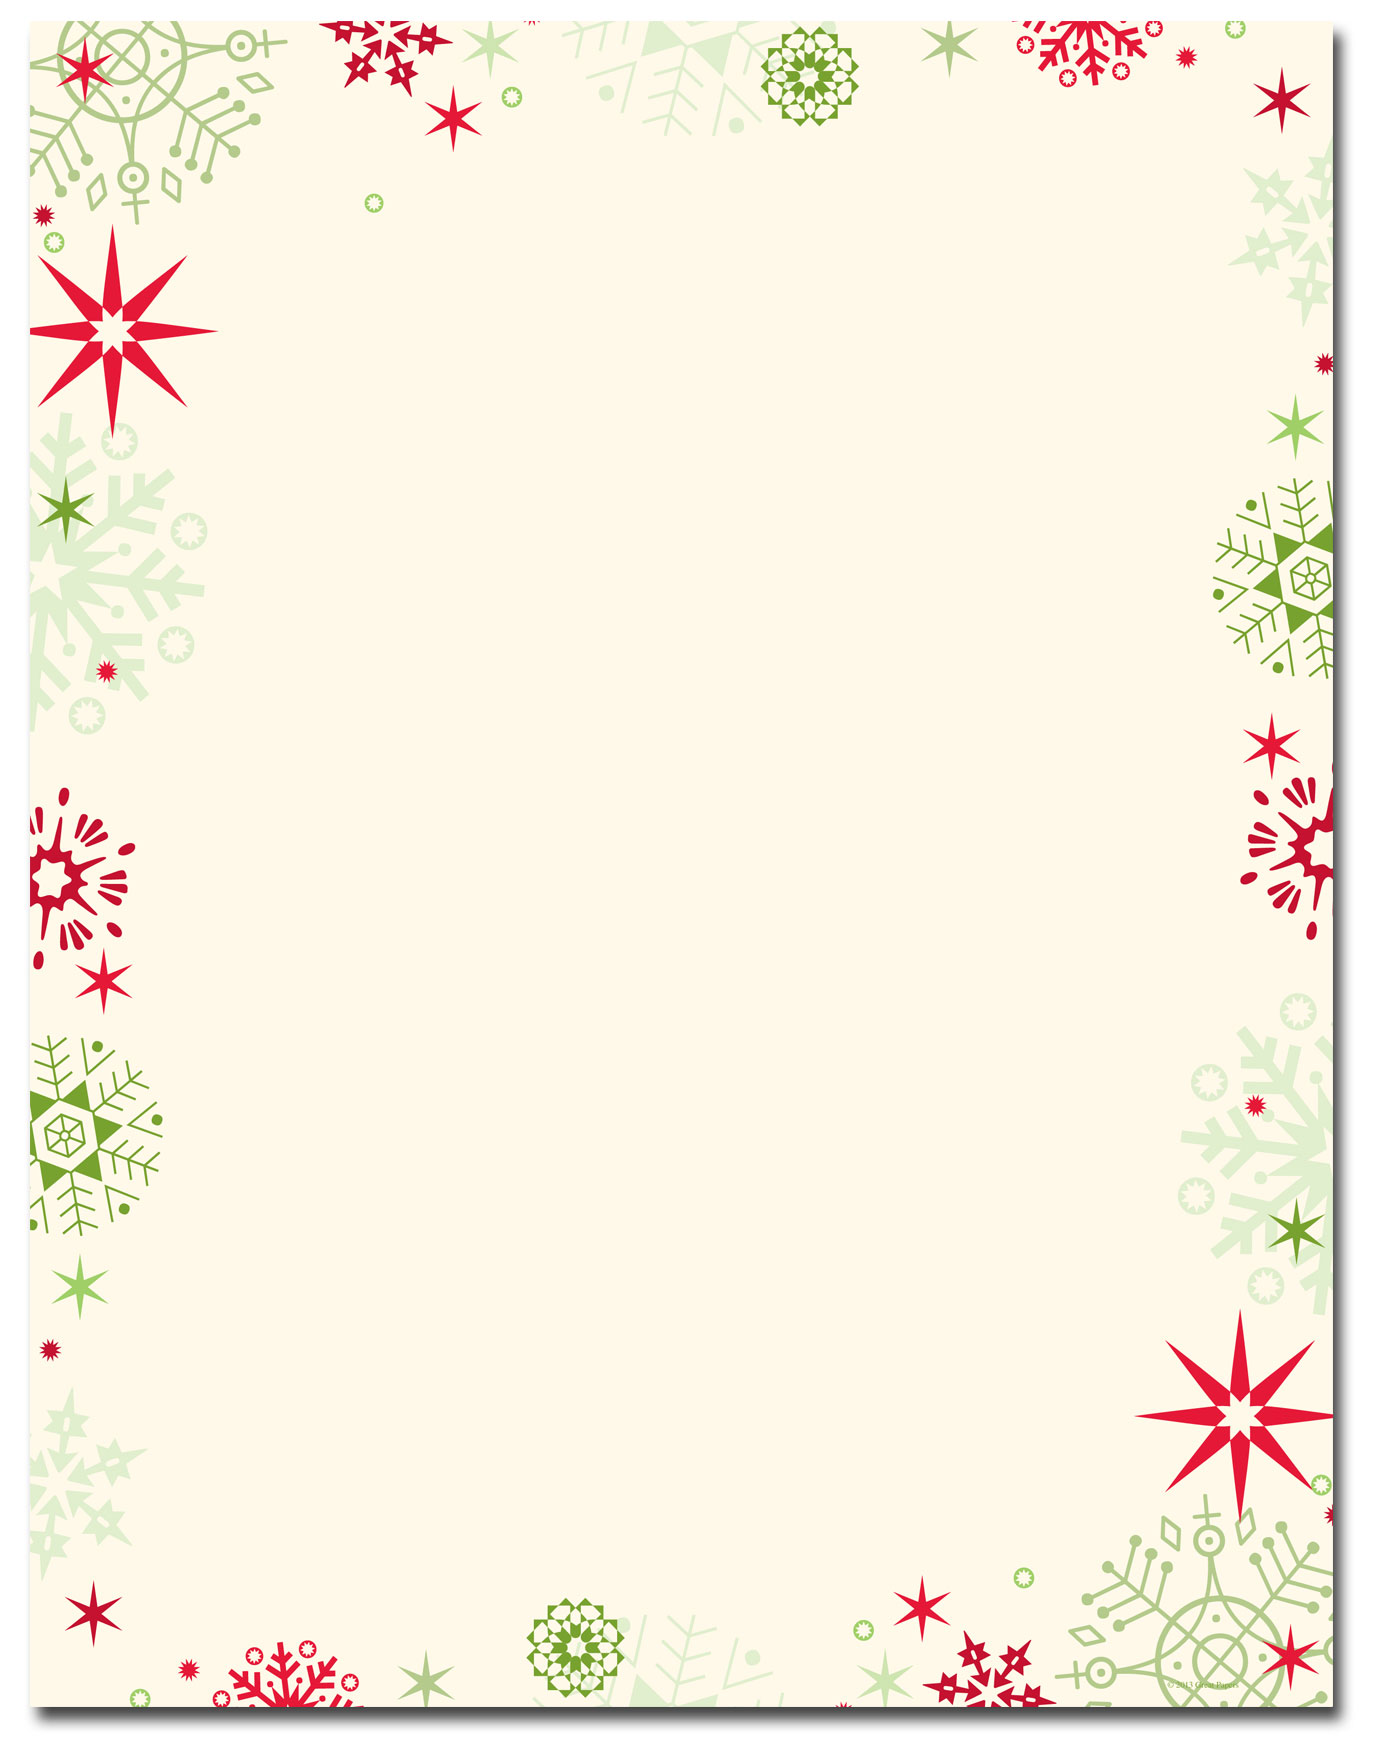 Red & Green Flakes Letterhead - 25 Pack